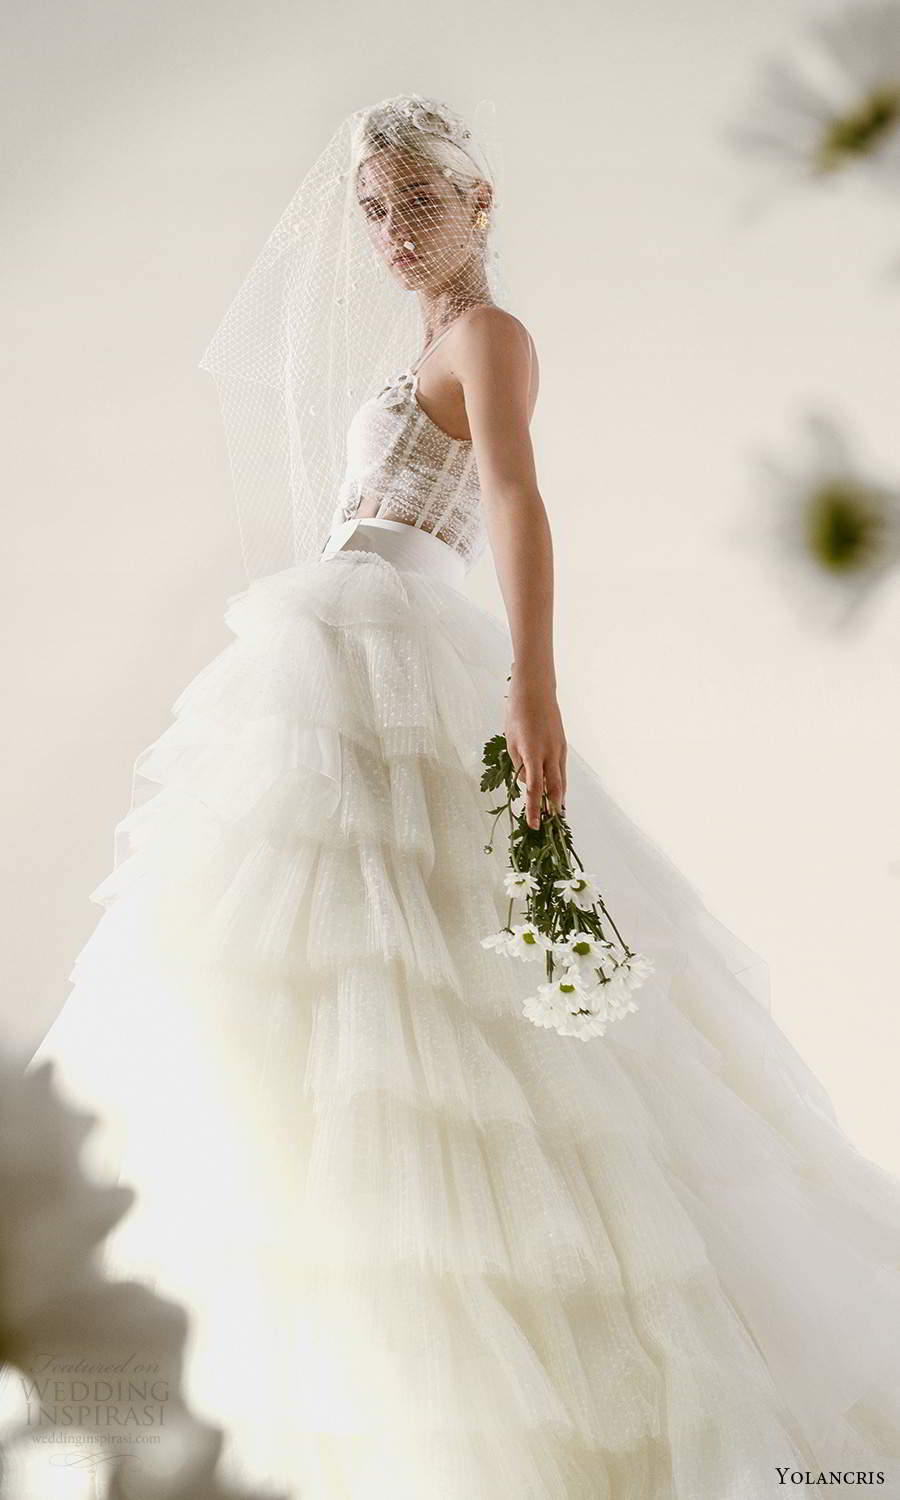 yolancris 2021 bridal sleeveless double straps sweetheart neckline ruched bodice a line ball gown wedding dress tiered skirt (10) mv